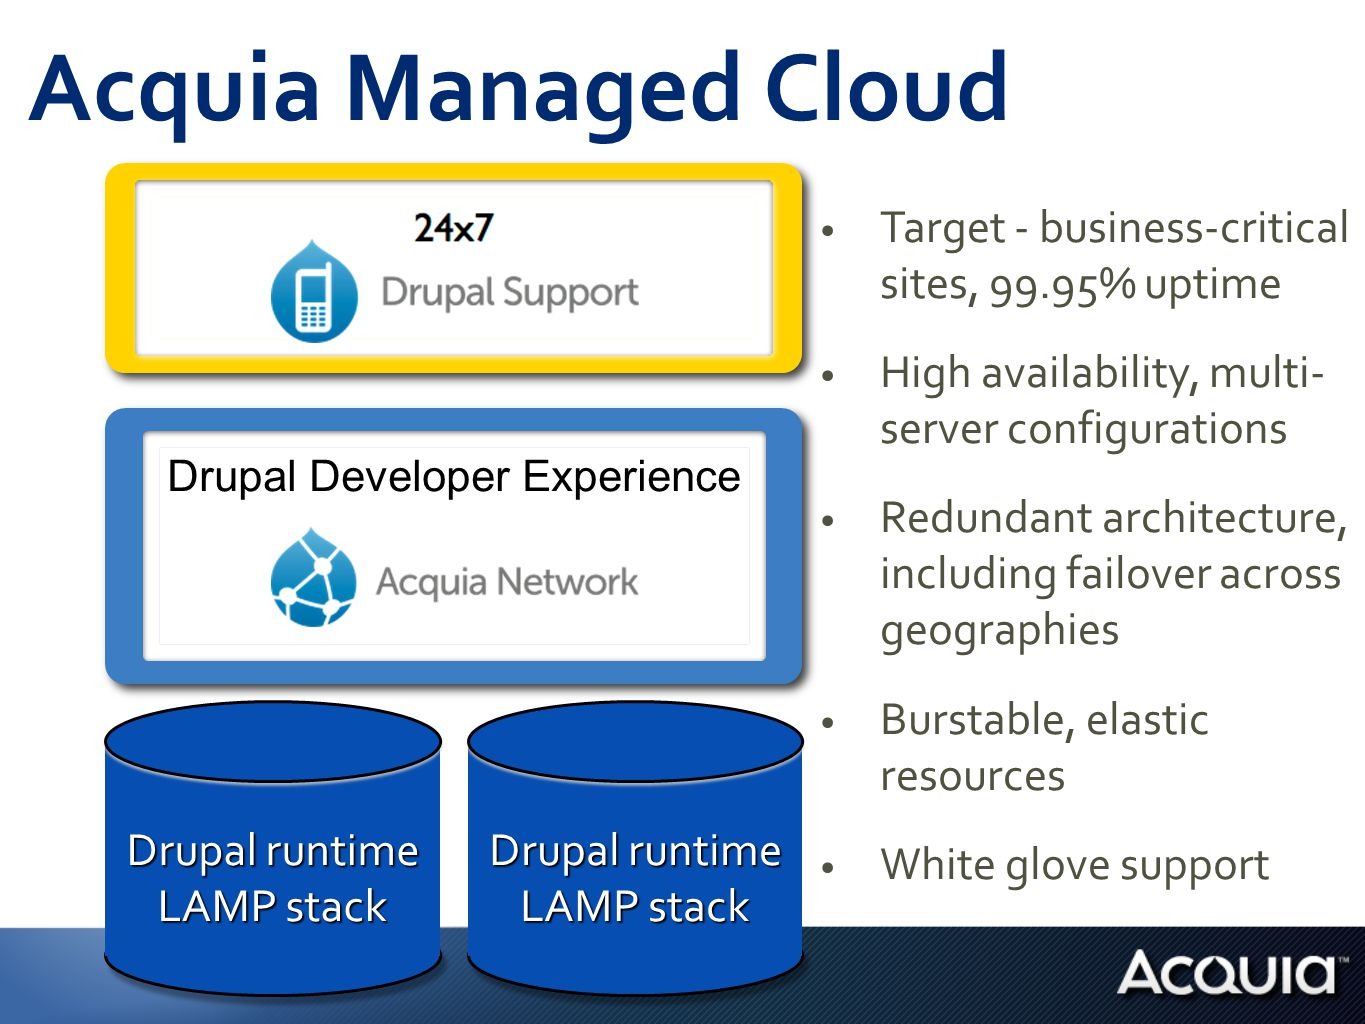 Drupal runtime LAMP stack Drupal runtime LAMP stack Drupal Developer Experience Acquia Managed Cloud Target - business-critical sites, 99.95% uptime High availability, multi- server configurations Redundant architecture, including failover across geographies Burstable, elastic resources White glove support